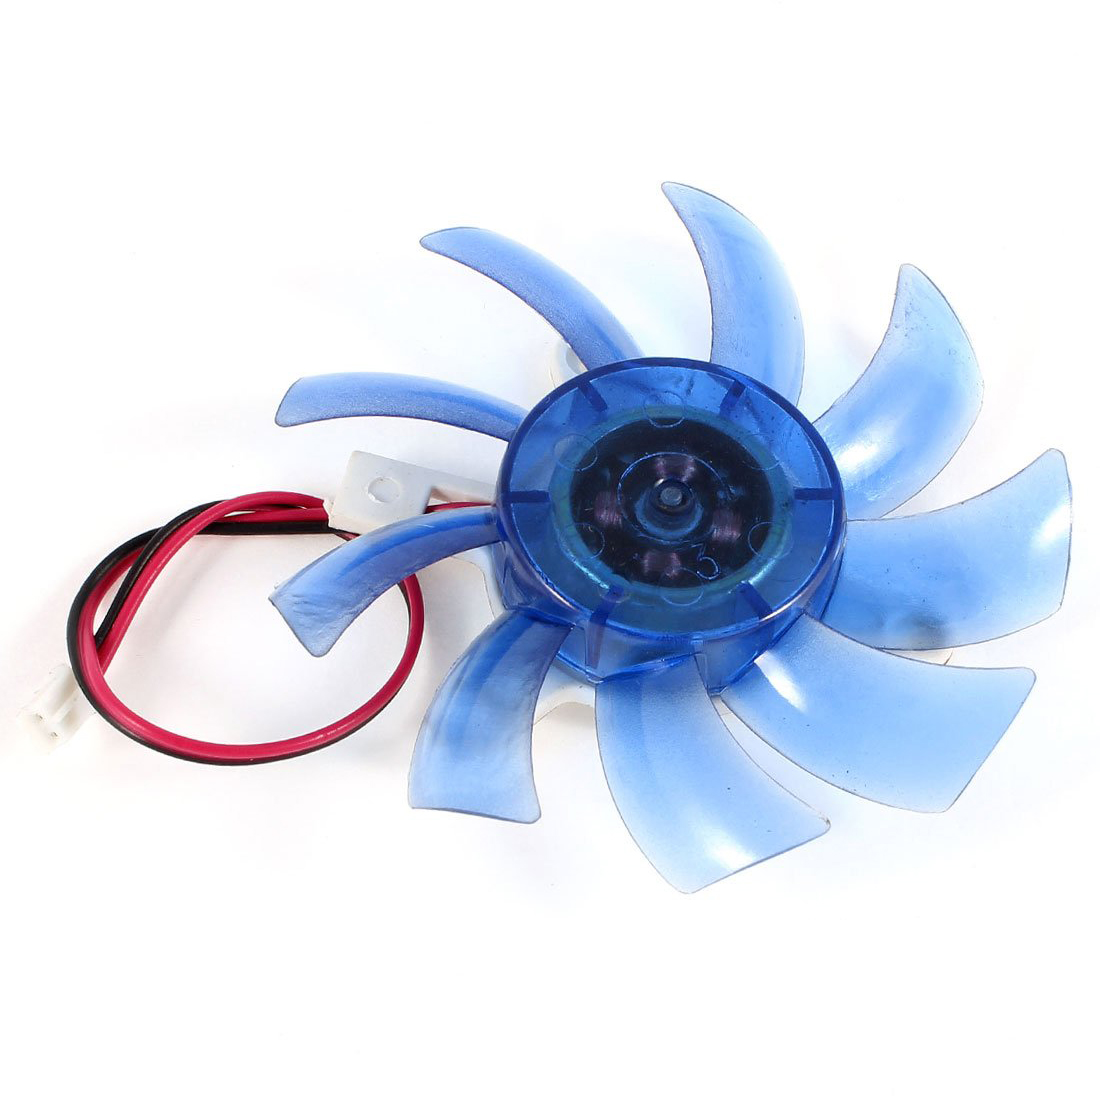 75mm 12VDC Blue Plastic VGA Video Card Cooling Fan Cooler for Computer ga8202u gaa8b2u 100mm 0 45a 4pin graphics card cooling fan vga cooler fans for sapphire r9 380 video card